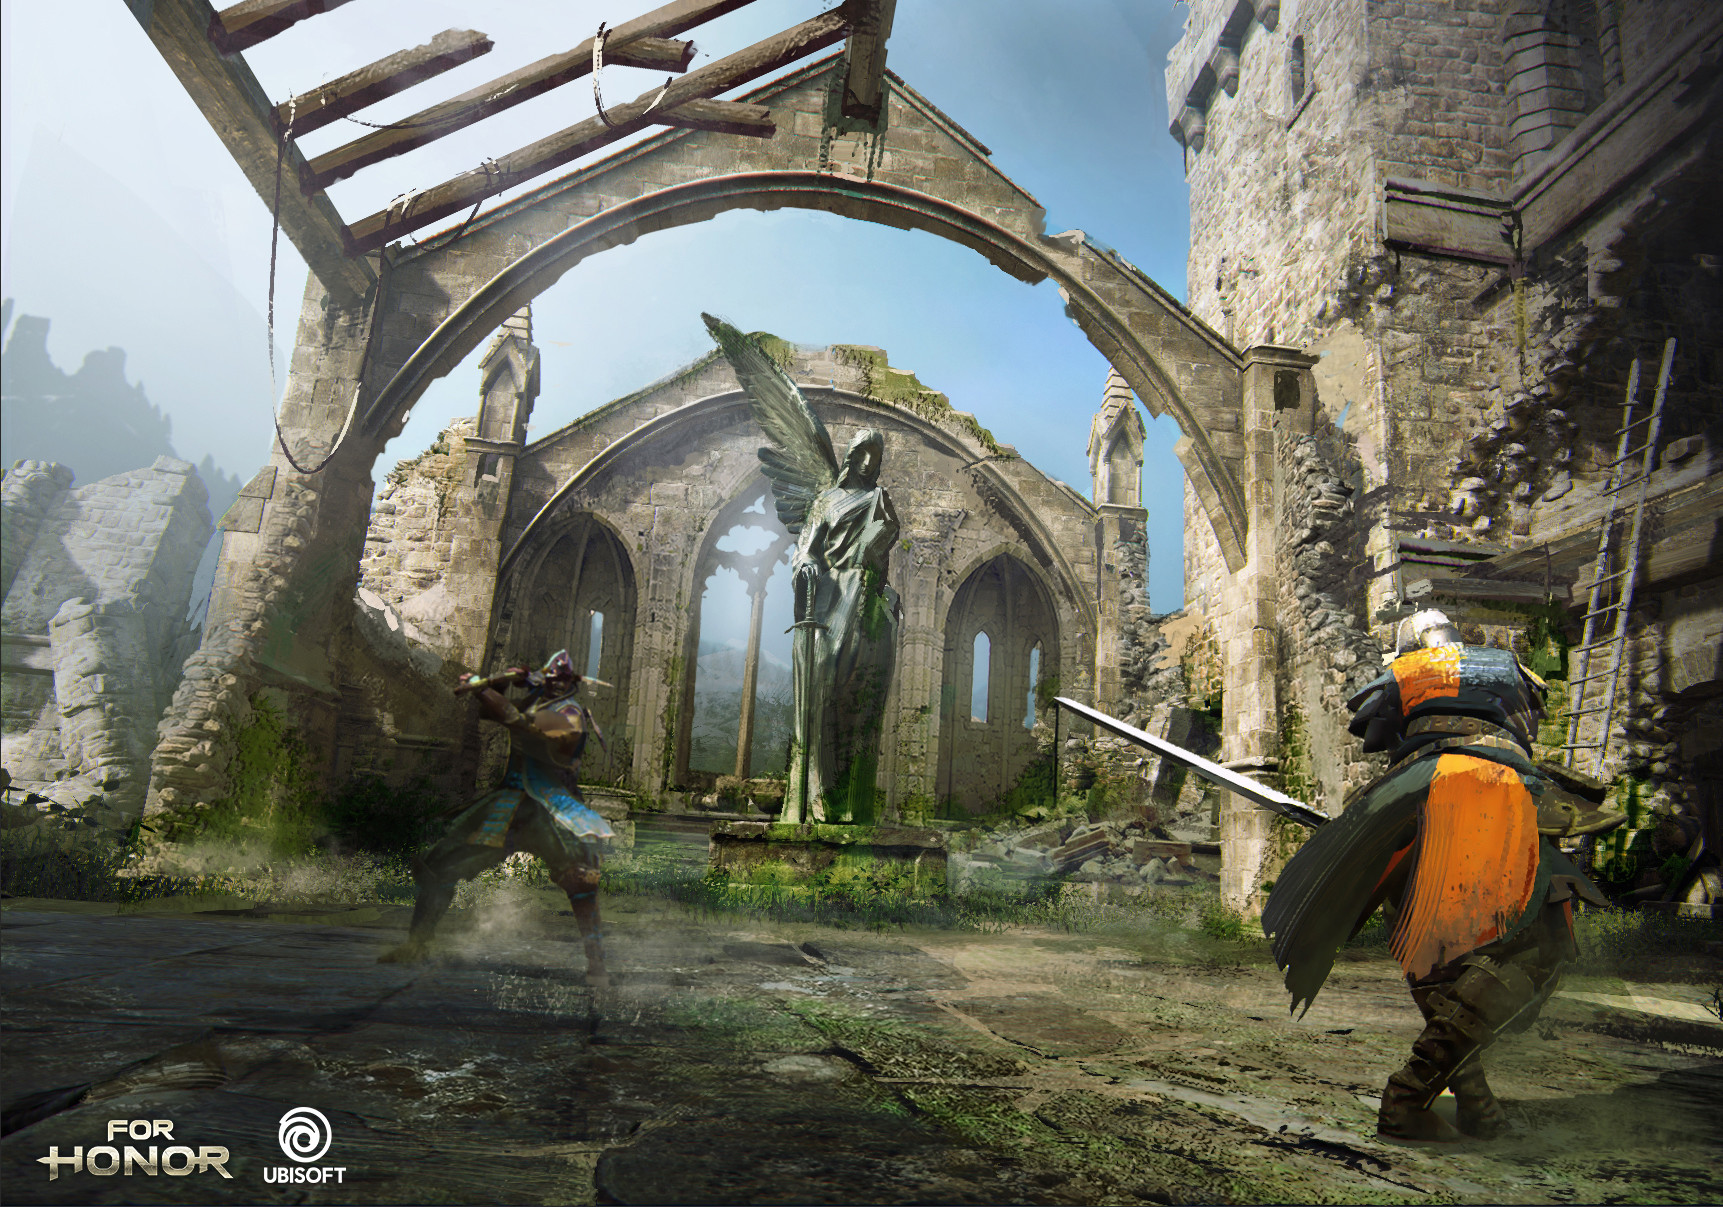 For Honor 60 Concept Art By Damian Buzugbe 46